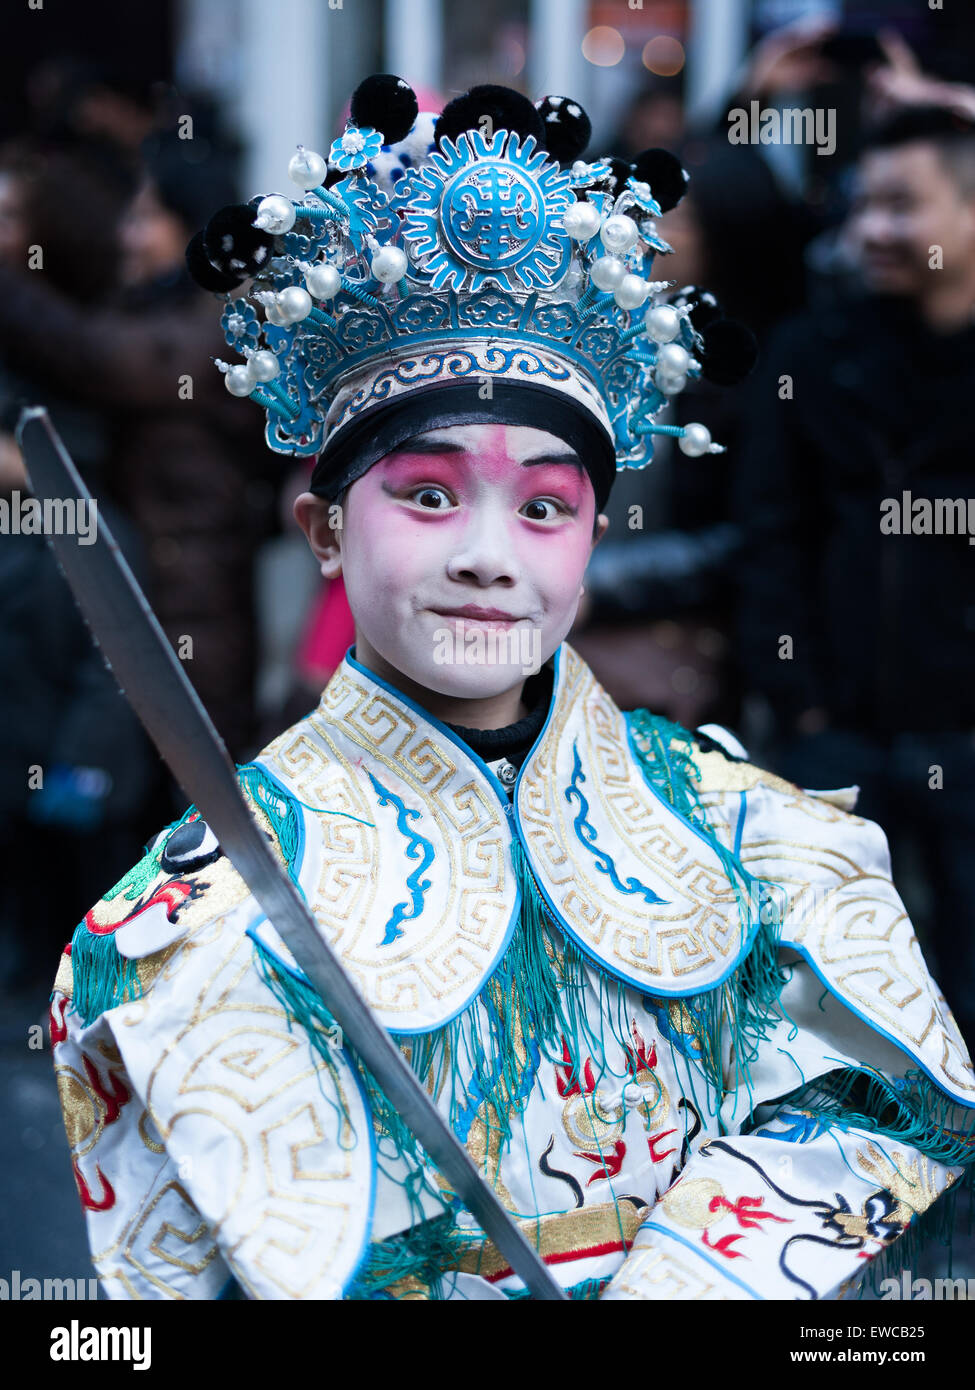 Paris, France - Feb 02, 2014: Chinese young man performs in traditional costume at the chinese lunar new year parade. Stock Photo